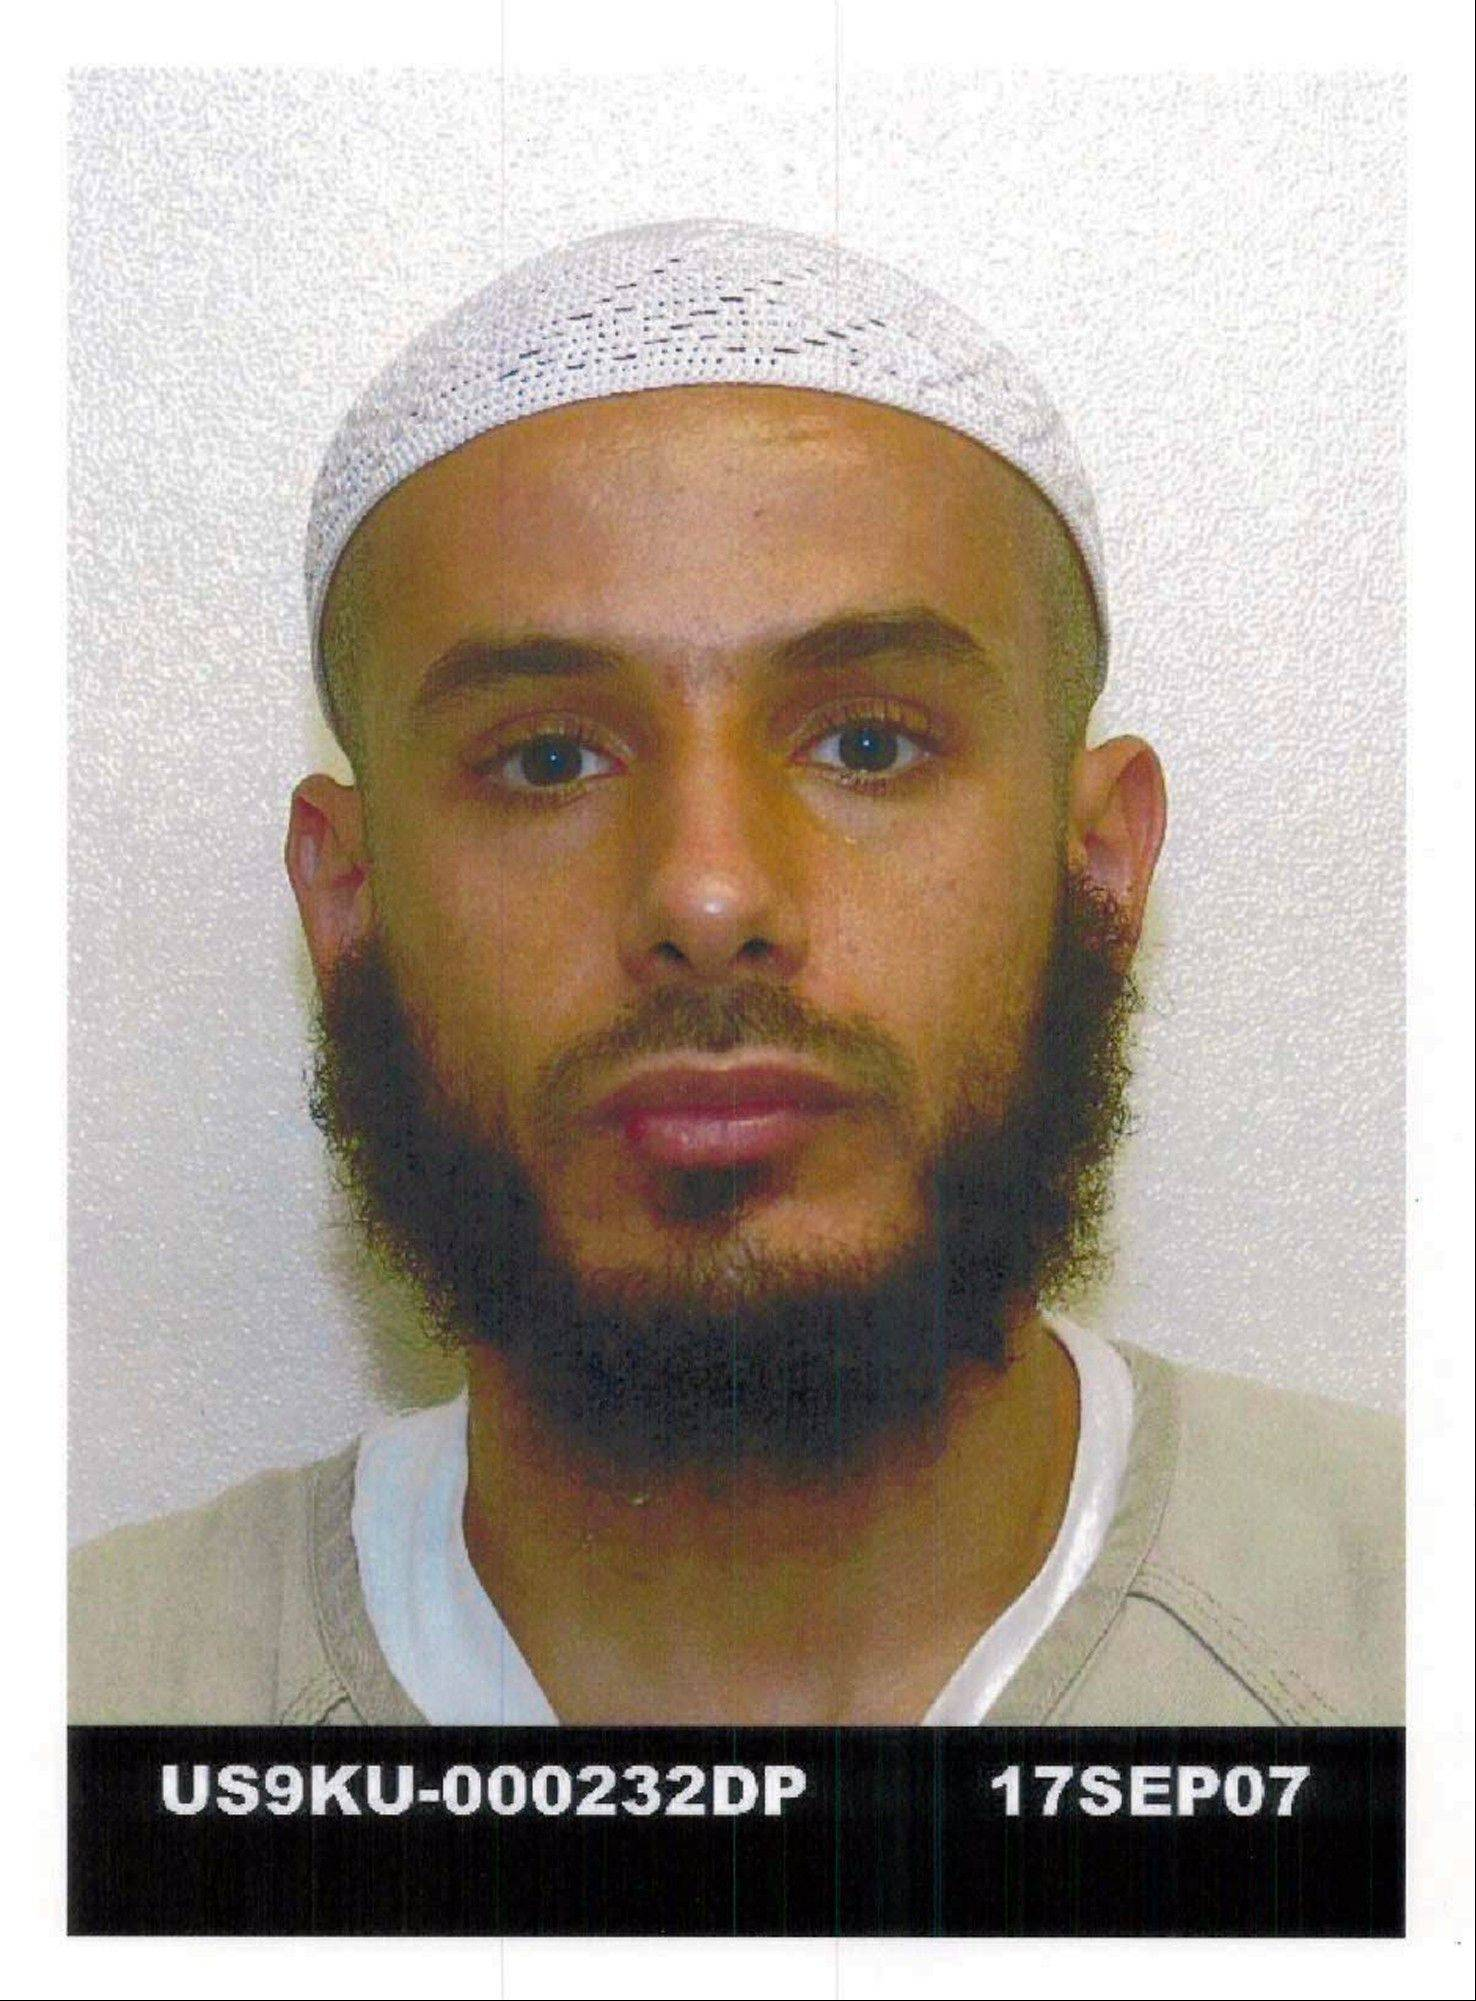 Guantanamo detainee Fawzi al-Odah, 36, is a Kuwaiti who has been held for more than 11 years at the Guantanamo Bay prison.